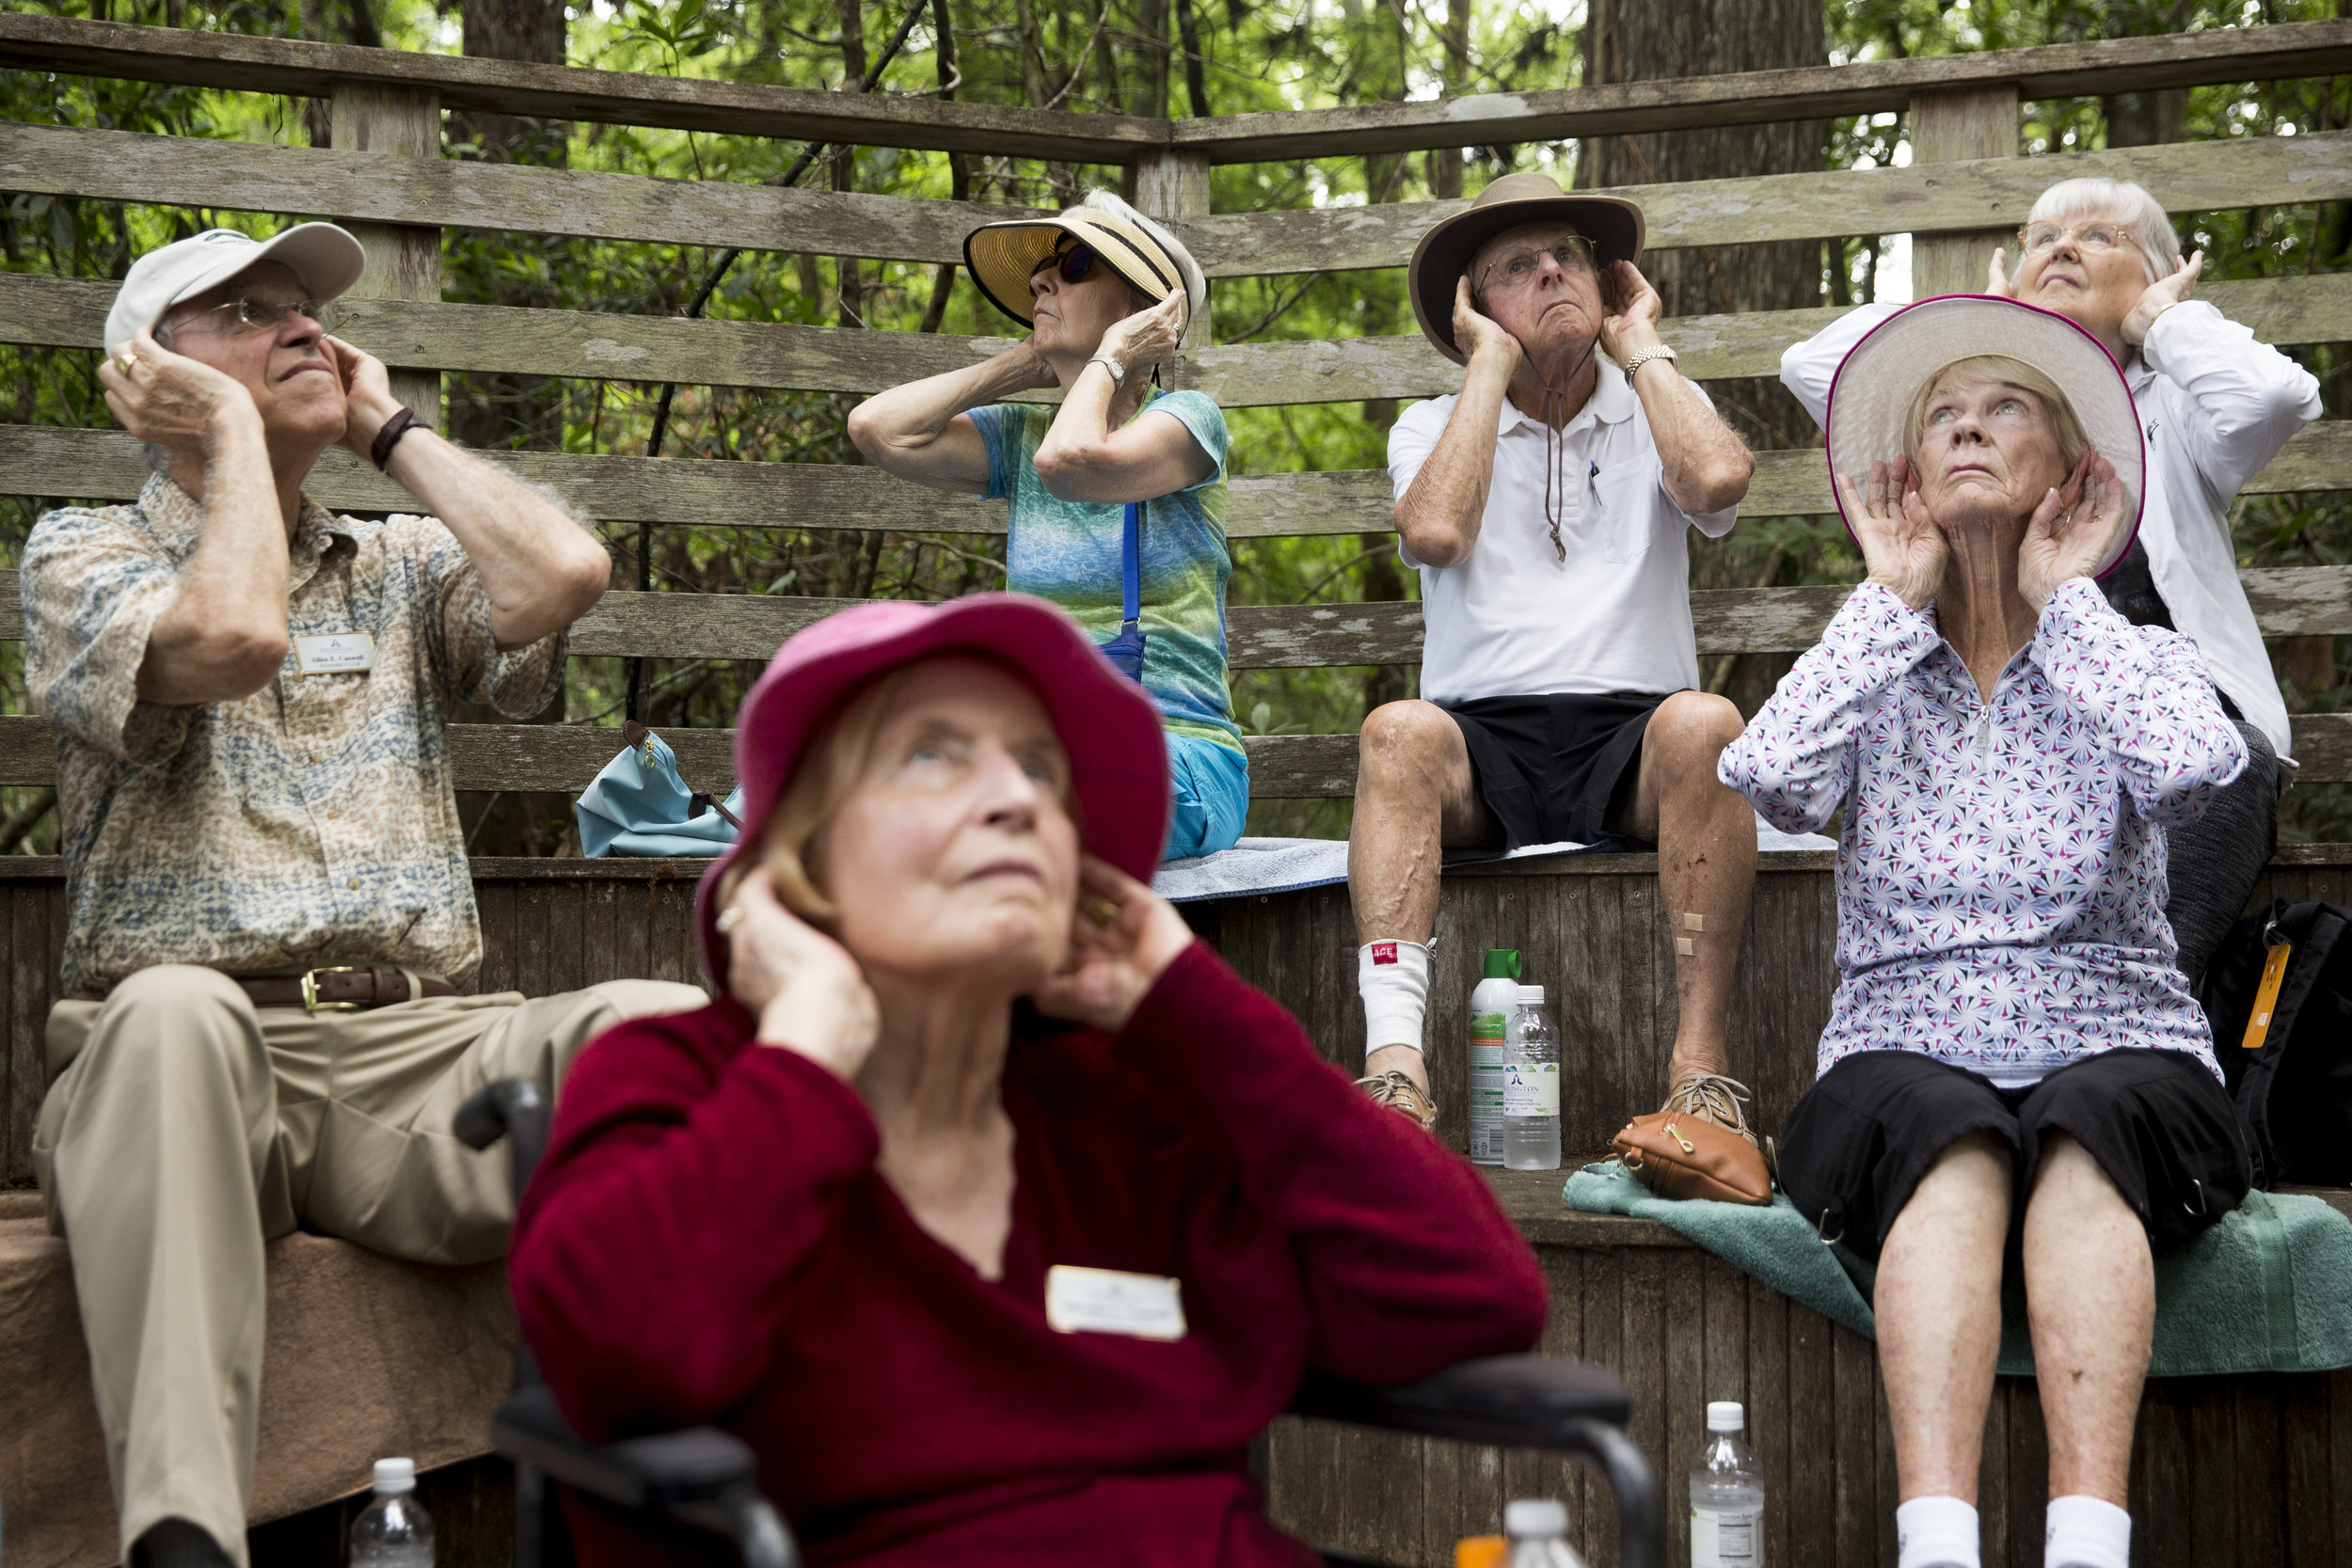 In honor of National Senior Health and Fitness Day residents of The Arlington, in a moment of silence, cup their ears to take in the many sounds of the swamp during a guided tour of Audubon Corkscrew Swamp Sanctuary Wednesday, May 31, 2017 in Naples.